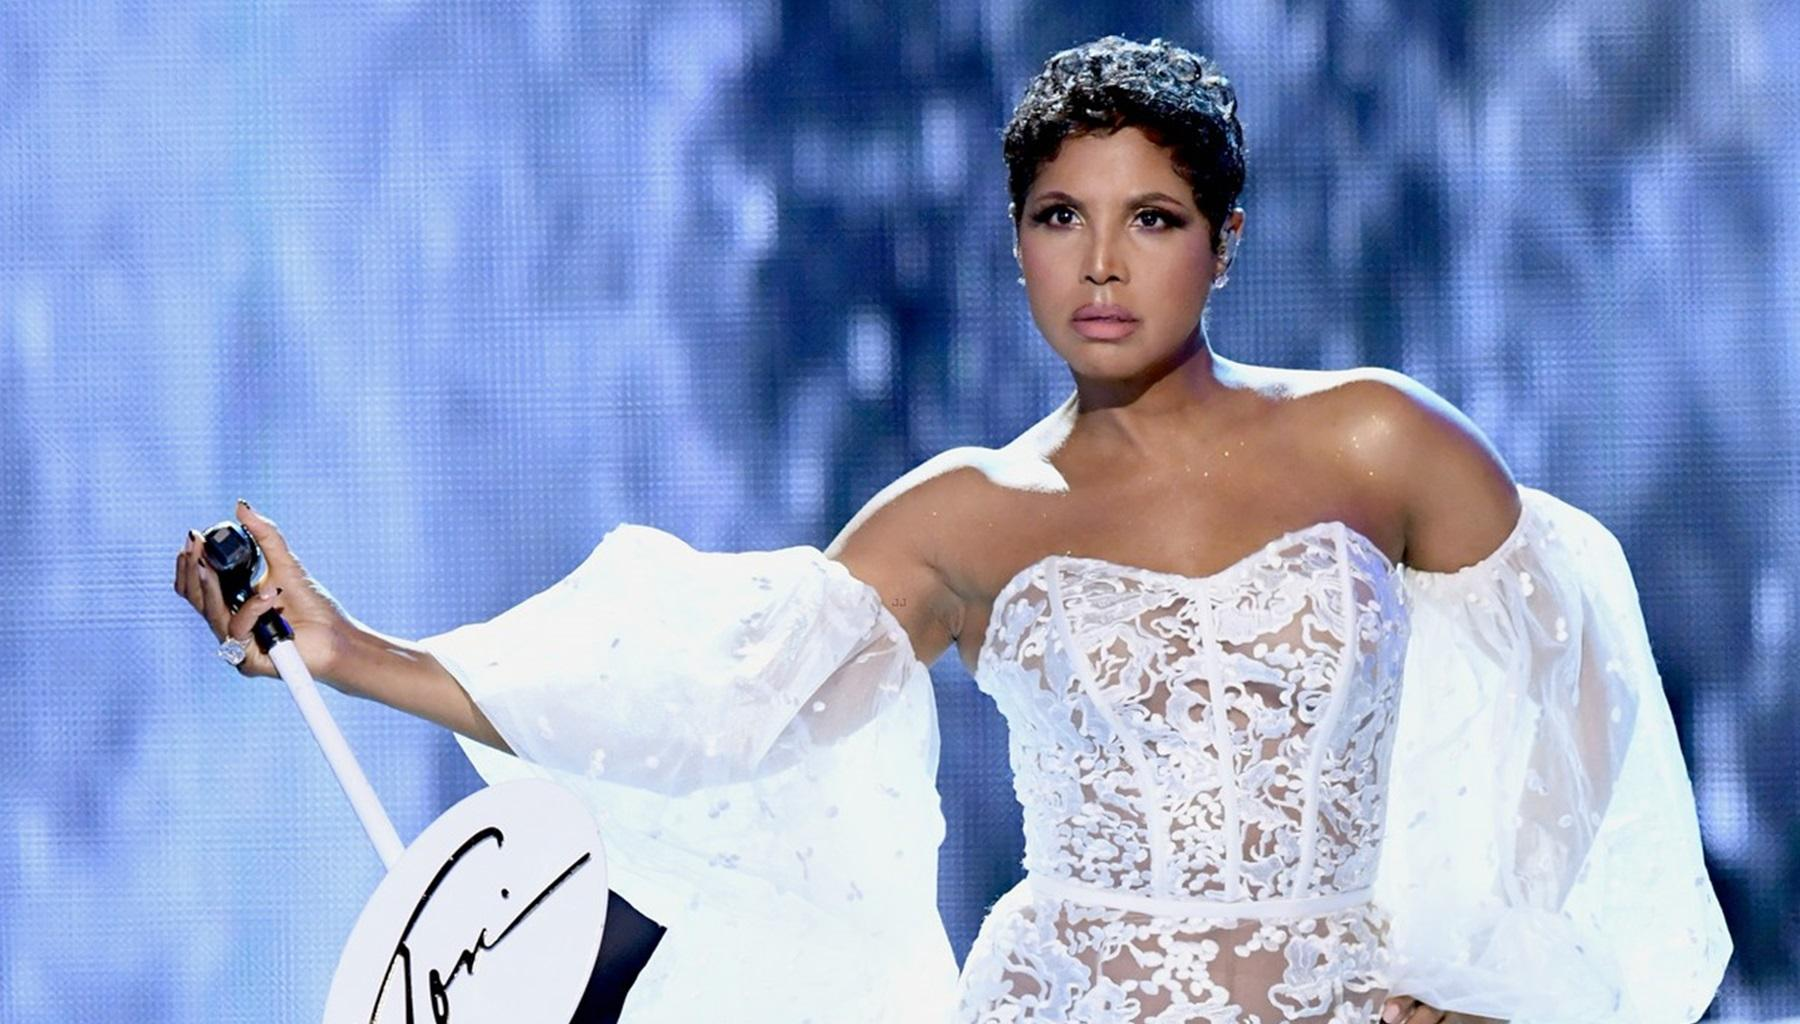 Tamar Braxton And Kris Jenner Had The Best Reactions To Toni Braxton's Stellar AMAs Performance For First Time In 25 Years